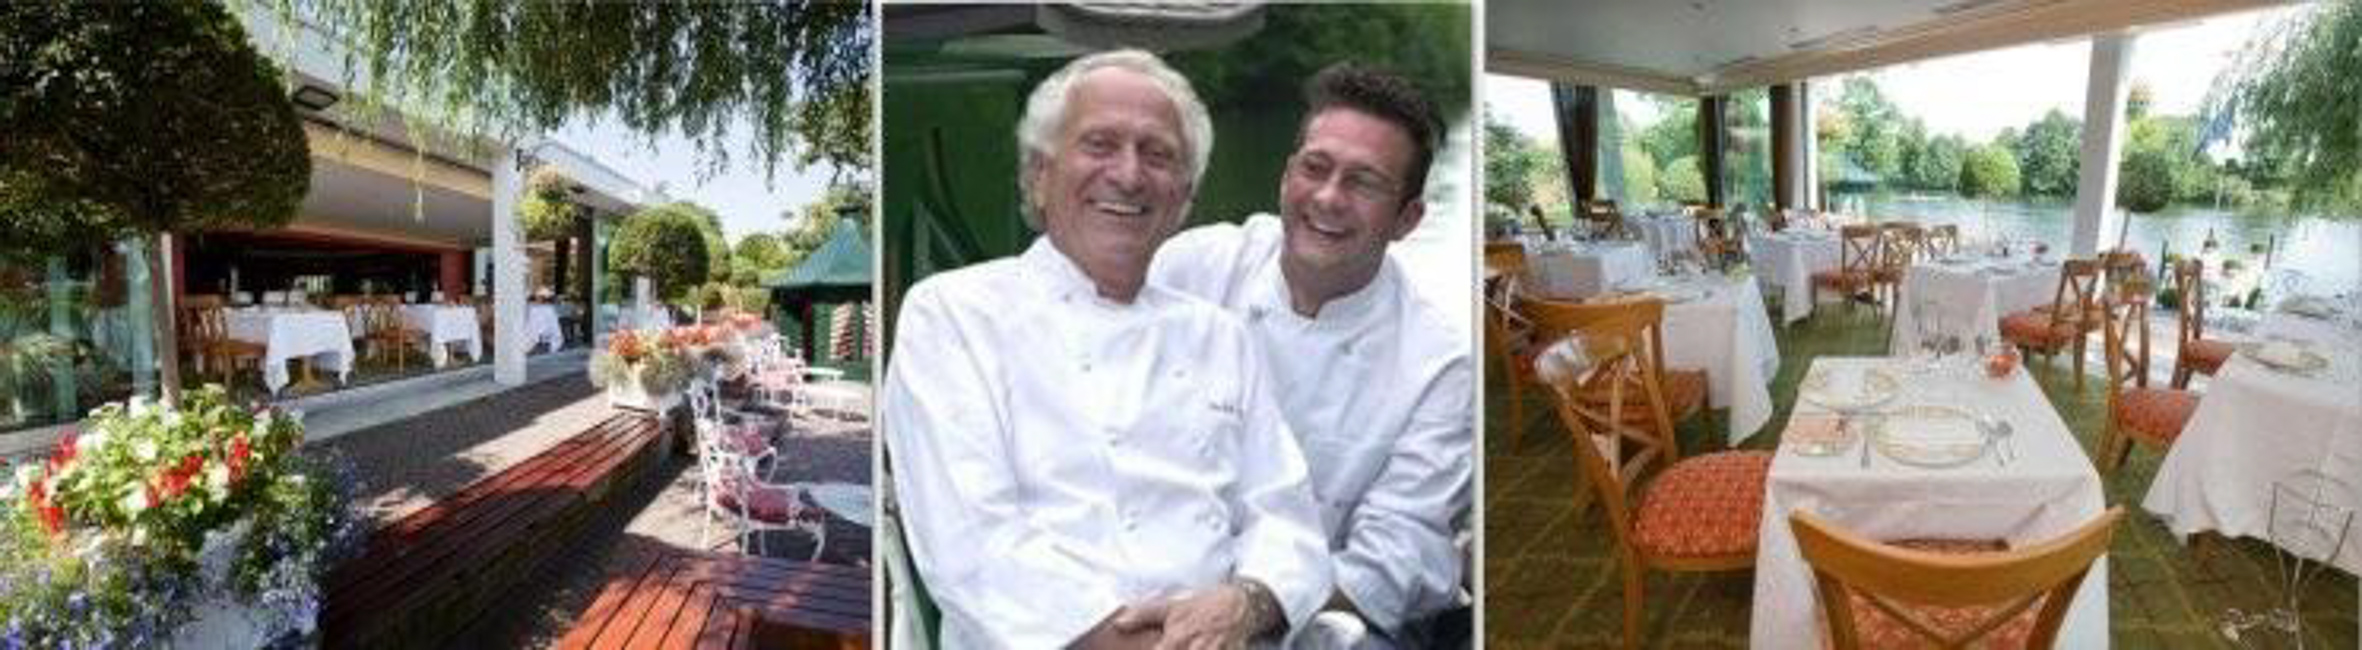 The terrace and main room at the Waterside Inn and Alain with his father, Michel Roux (Photos: Martin Brigdale)